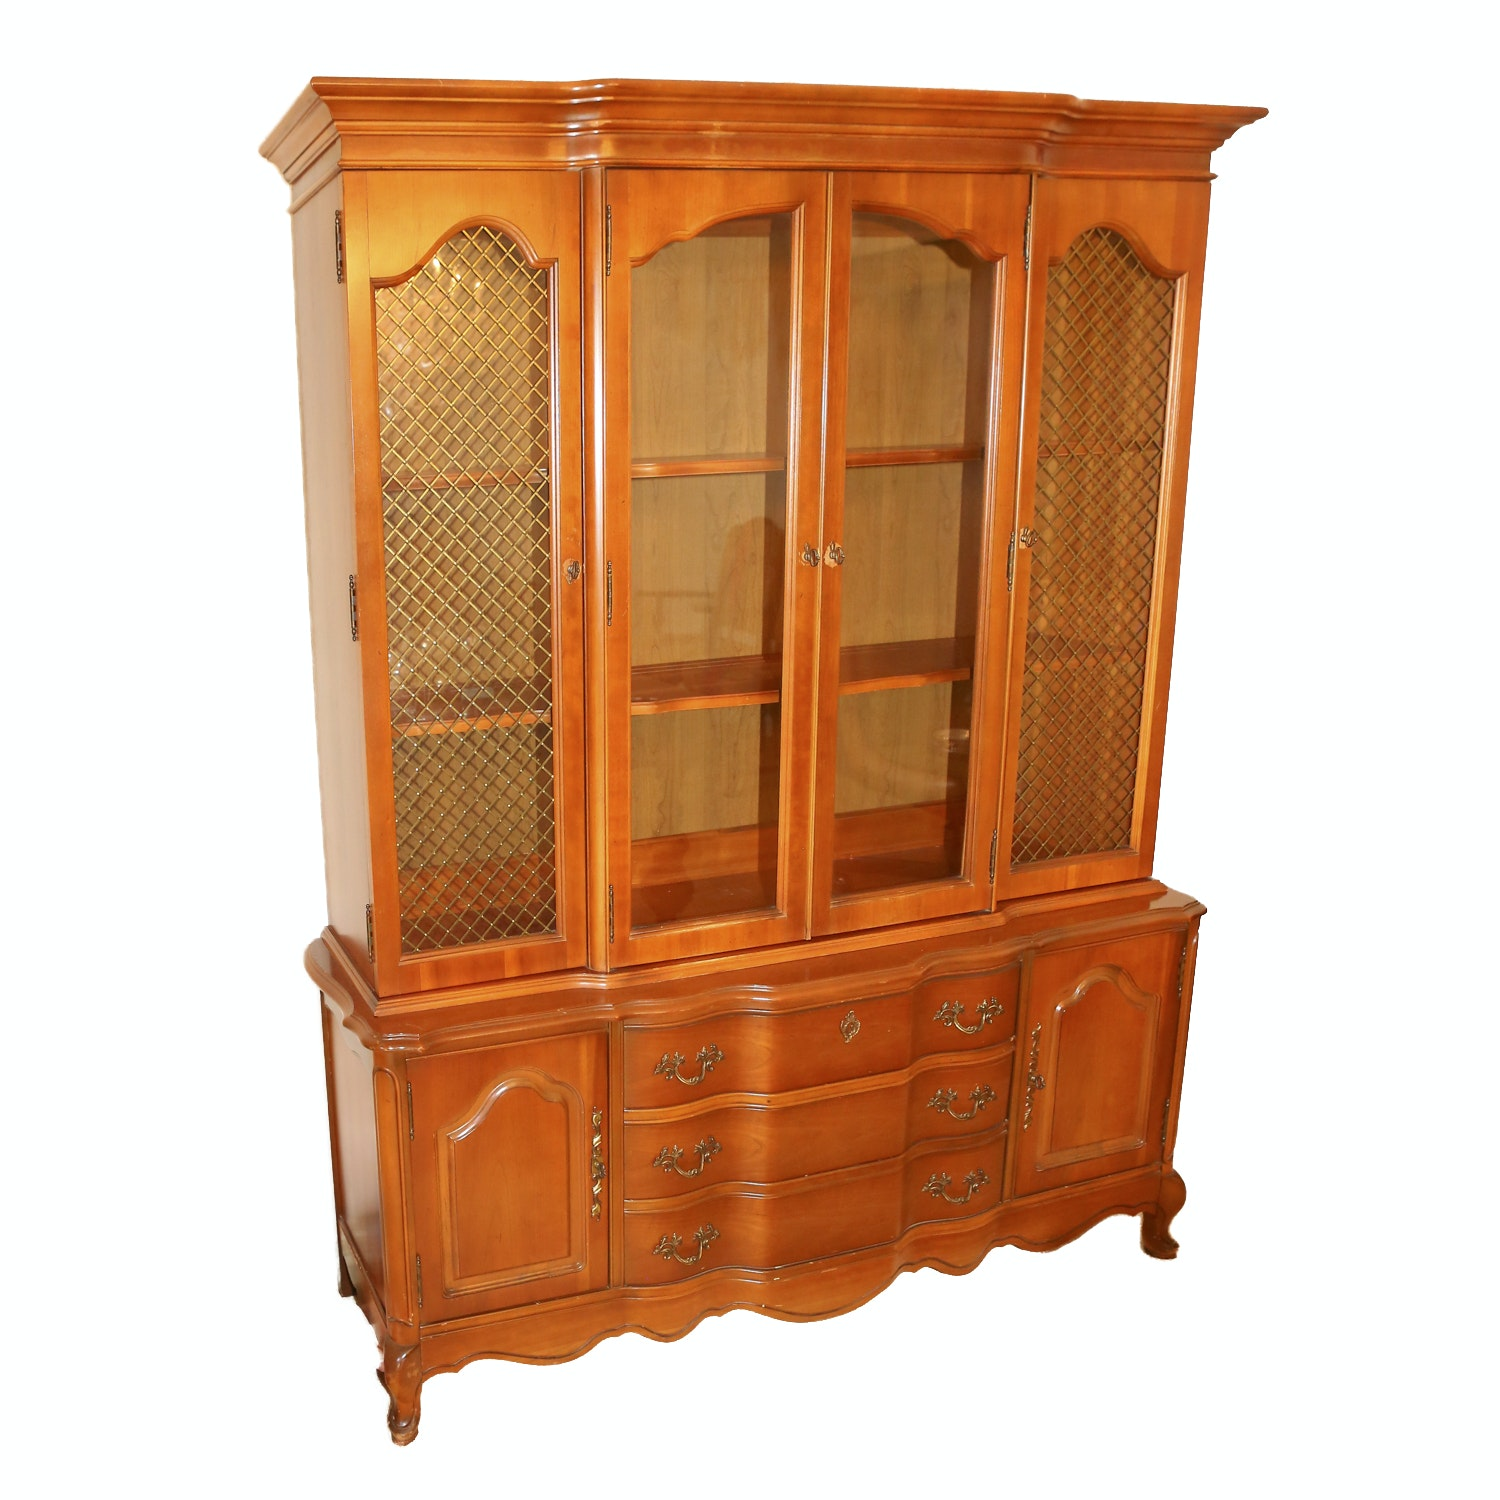 Louis XV Style Cherry China Cabinet by Basset Furniture